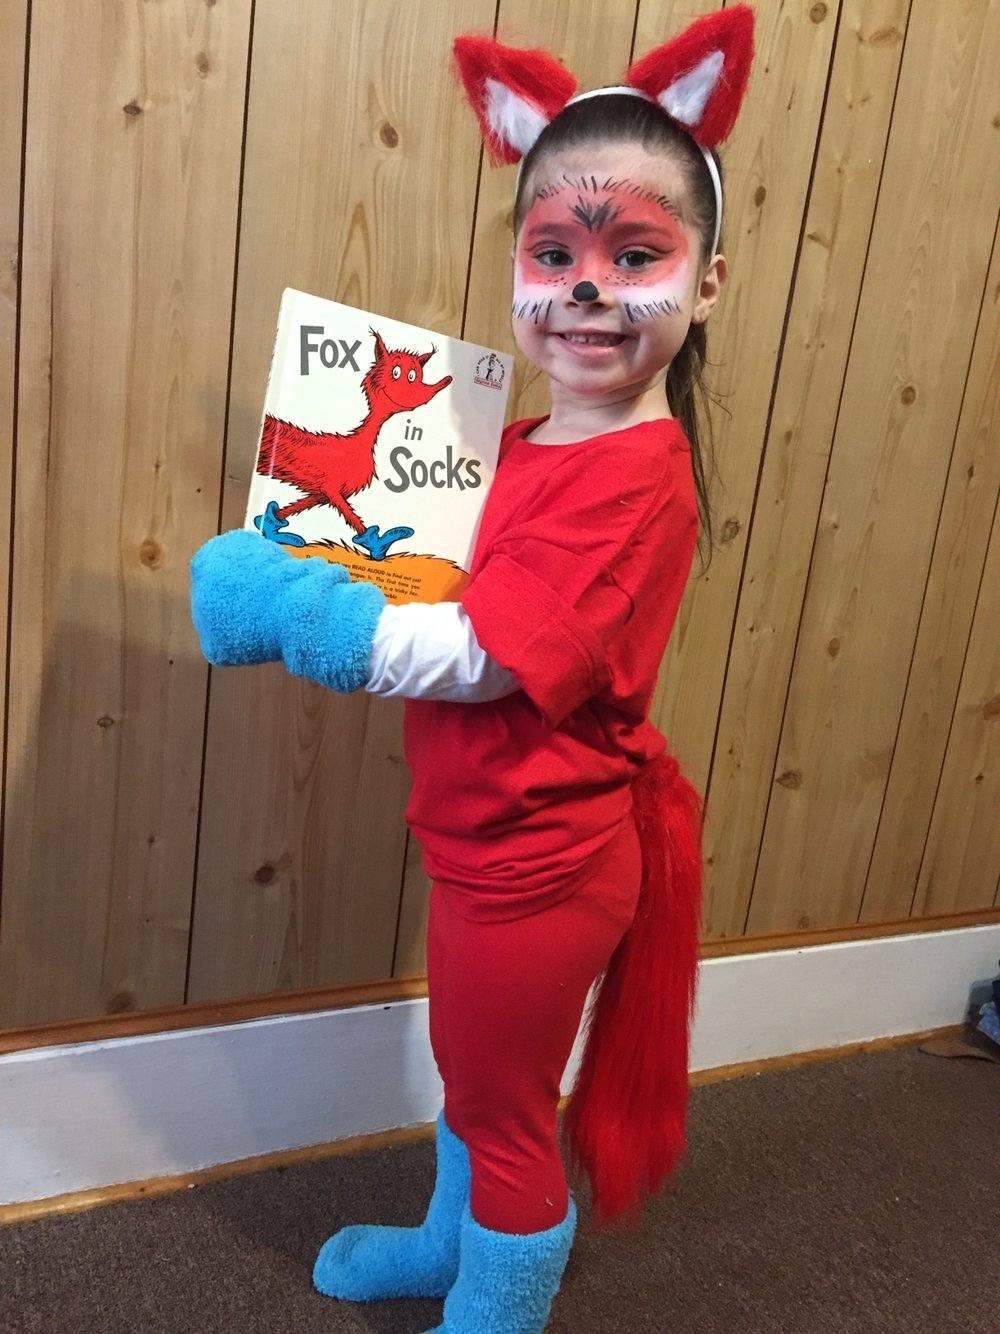 10 Stylish Dr Seuss Costume Ideas Homemade character day at school fox in socks diy costume  sc 1 st  Unique Ideas 2018 & 10 Stylish Dr Seuss Costume Ideas Homemade